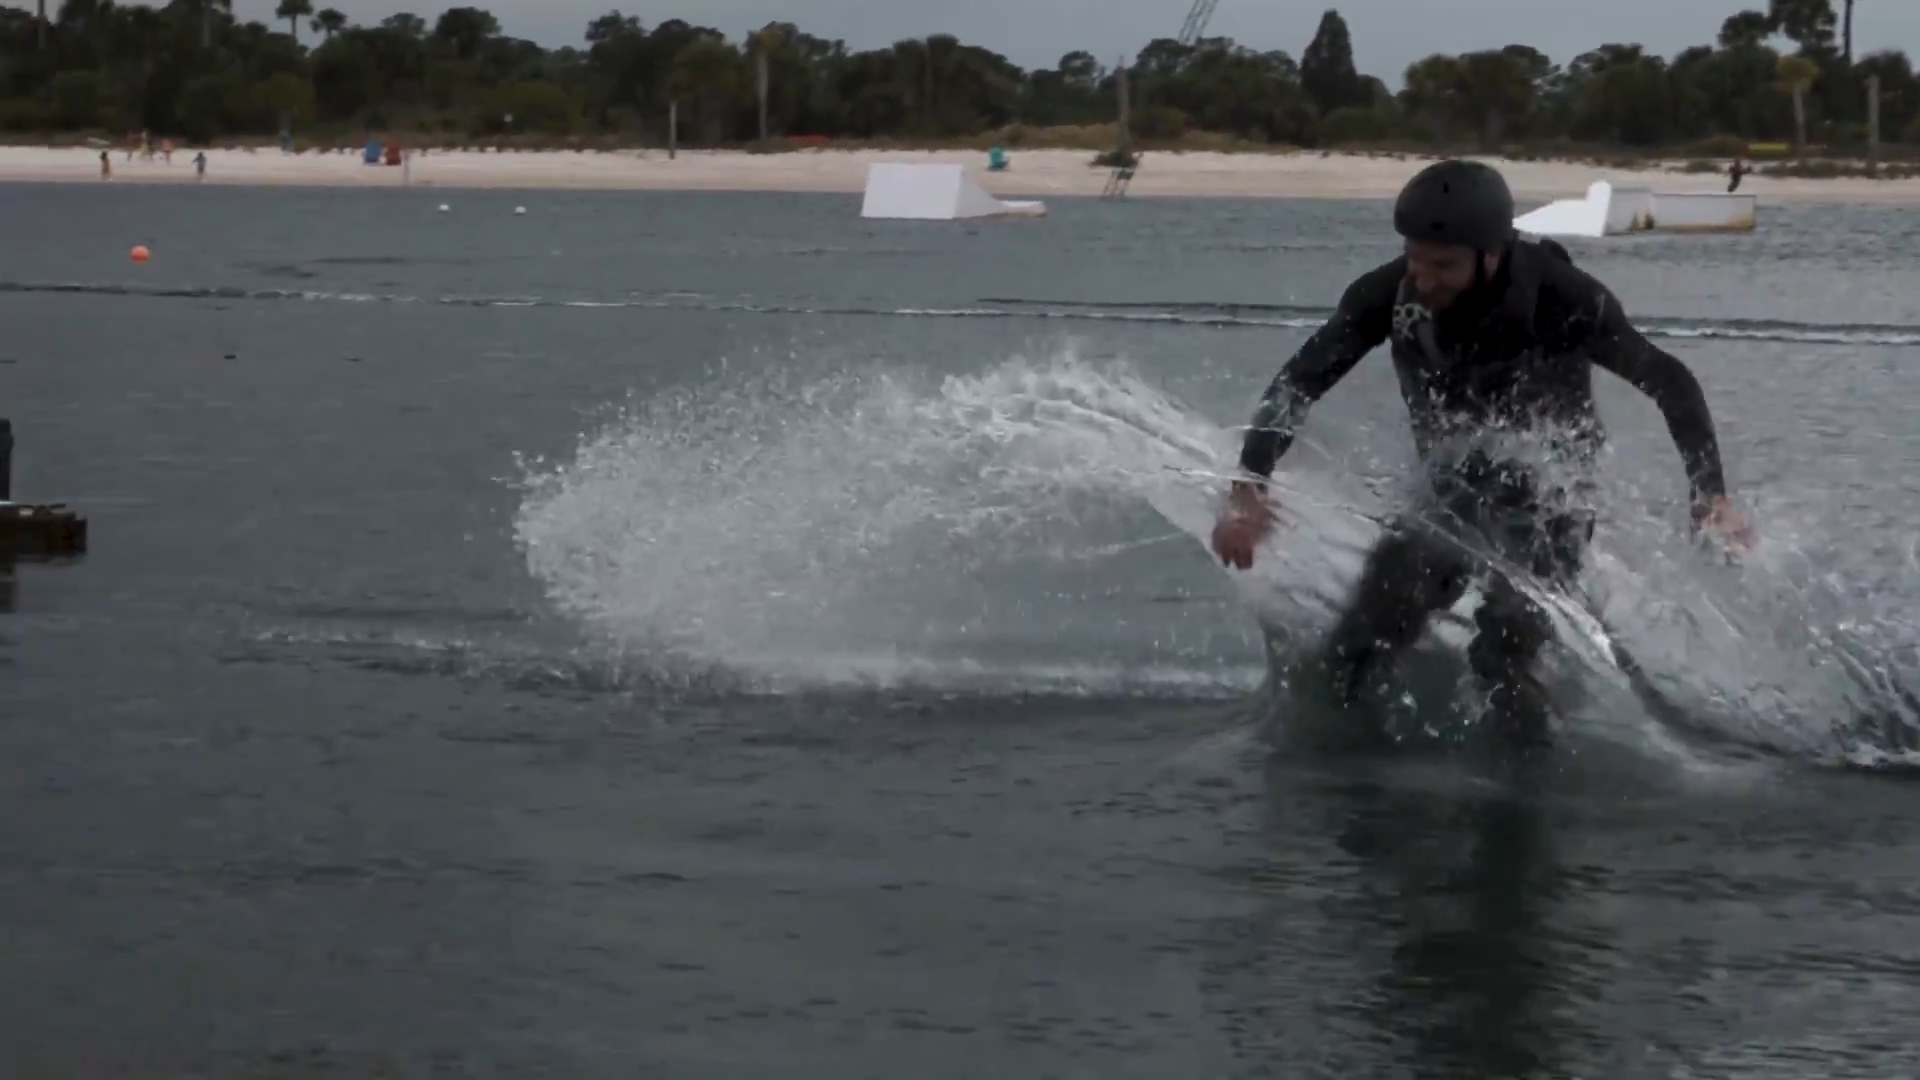 Wakeboarding Experience at a Cable Park in Florida